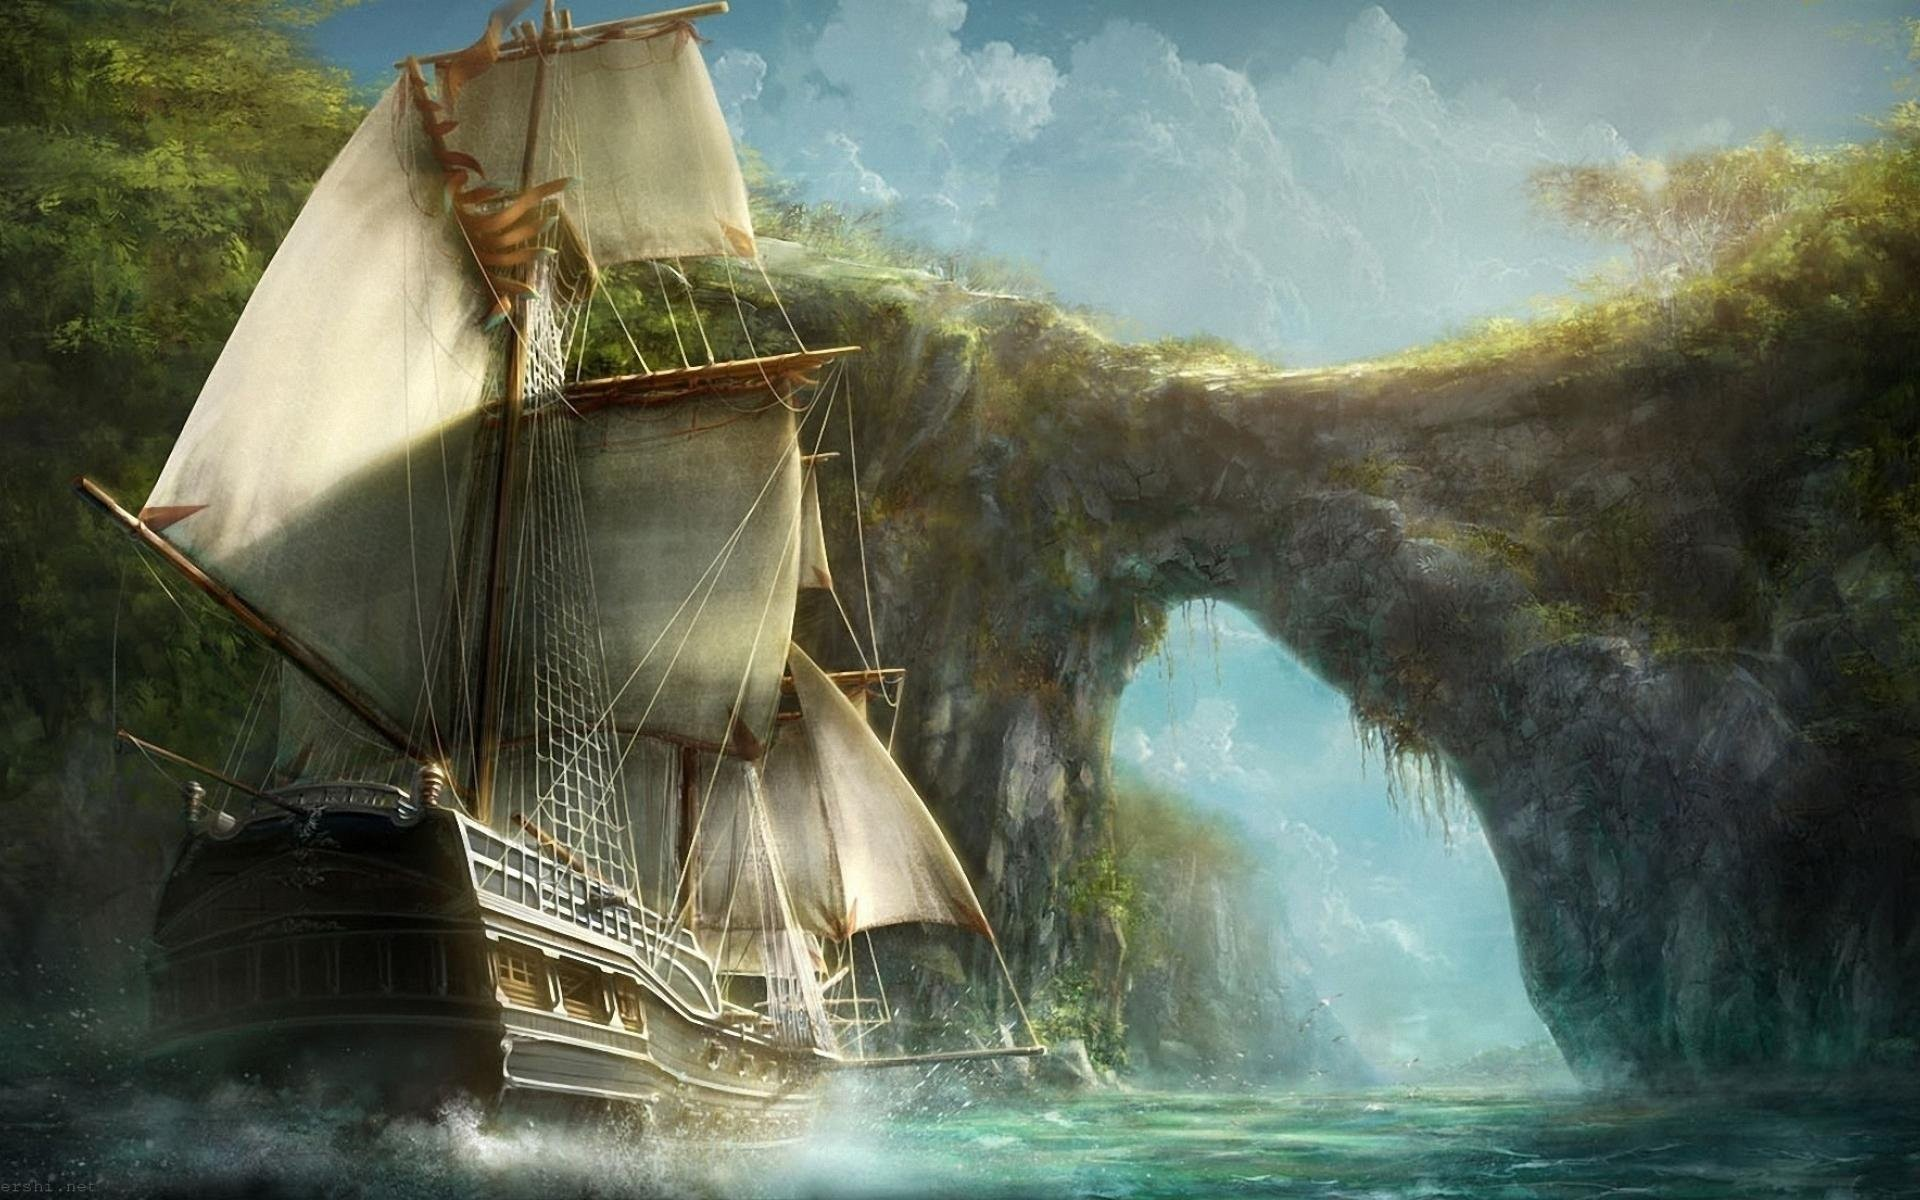 Hd Wallpapers Fantasy 79 Images: Fantasy Art Backgrounds (79+ Images